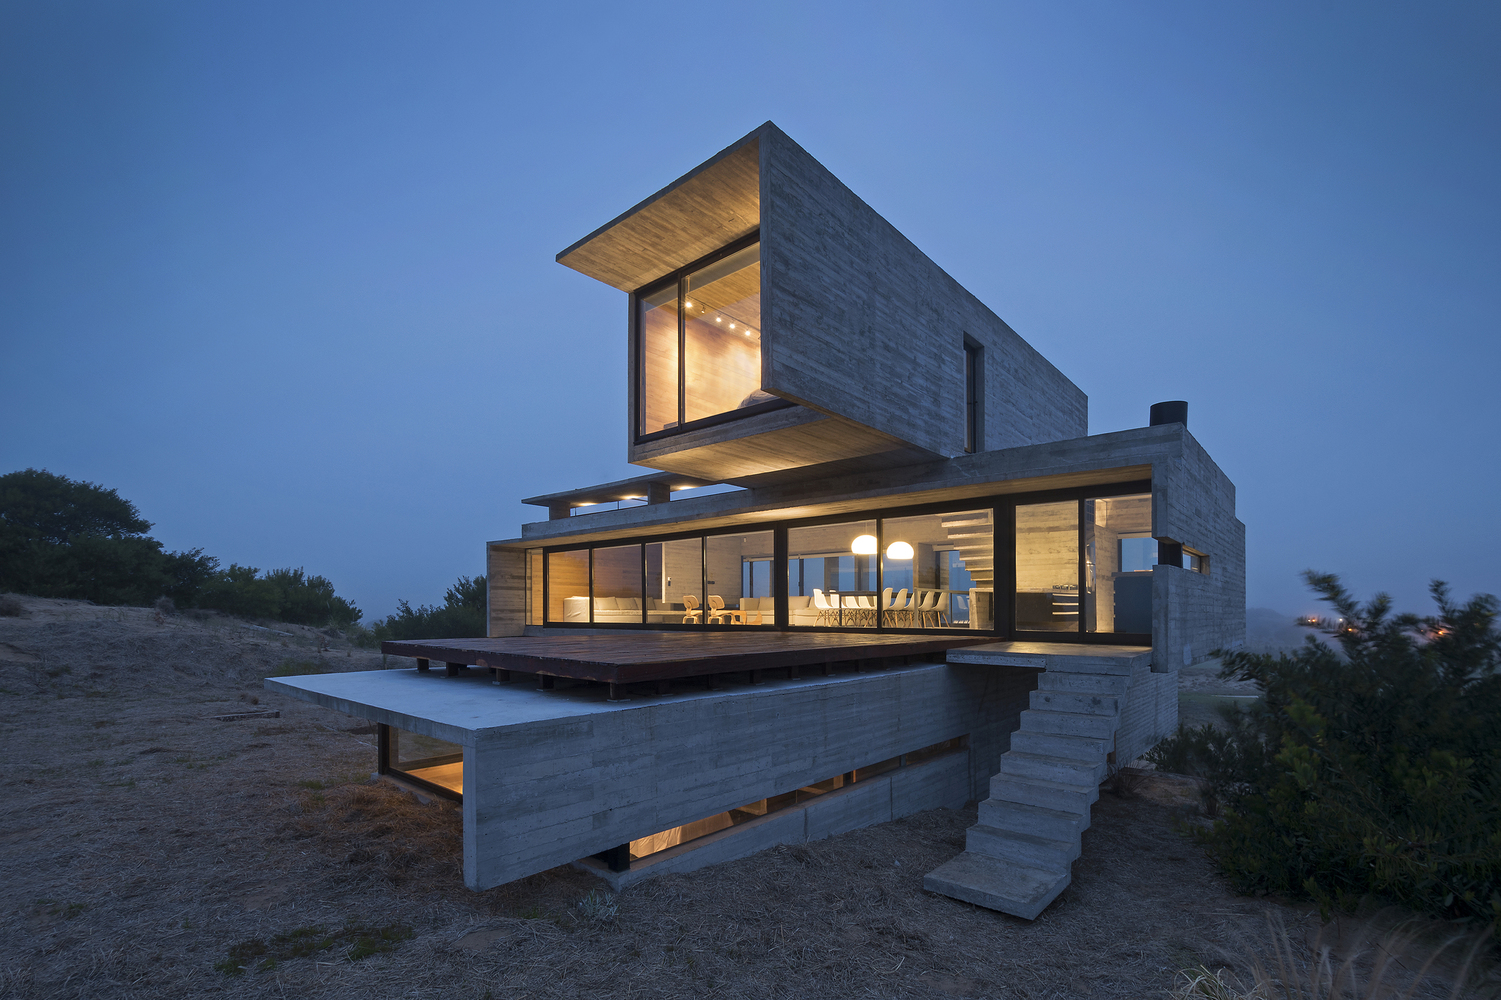 The Golf House by Luciano Kruk Arquitectos in Argentina